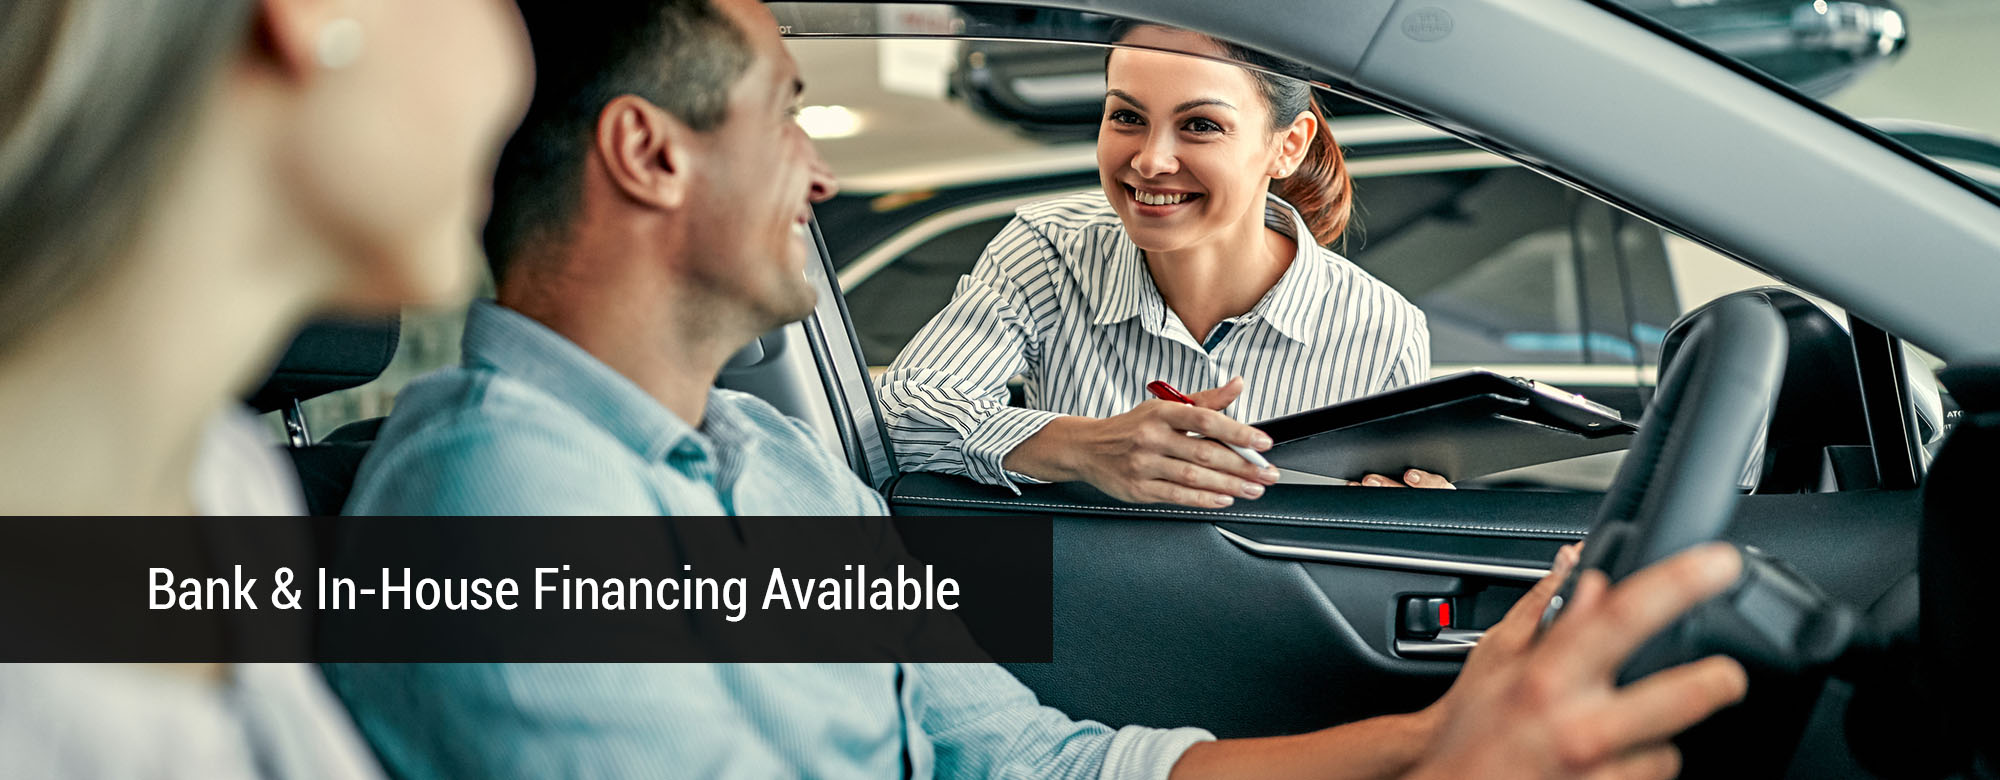 Bank & In-house Financing Fleetwing Auto